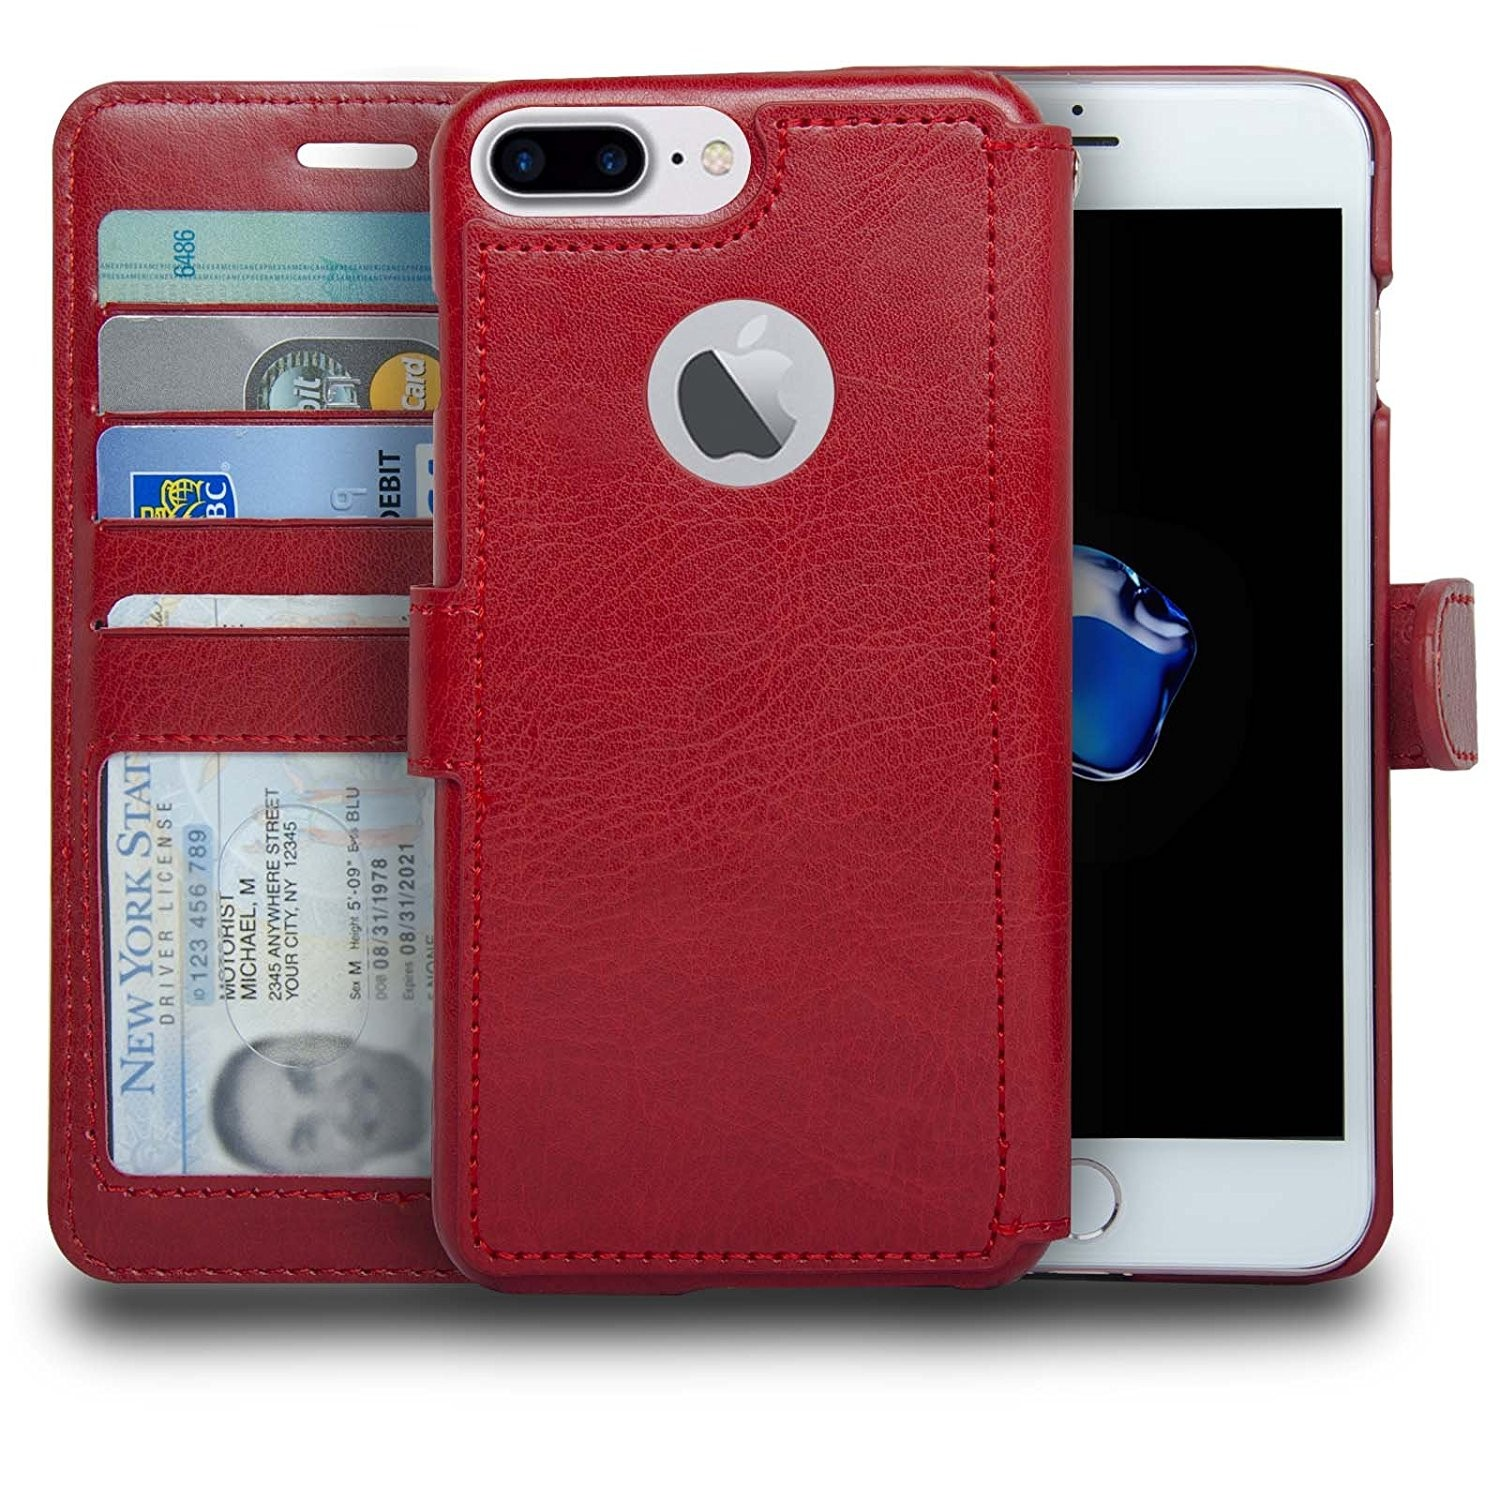 Iphone 6 7 8 Plus Cases Best Buy Canada Case Xs X Spigen Anti Shock With Stand Slim Armor Casing Champagne Gold Navor Zevo S2 Wallet Fit Light Premium Flip Cover Rfid Protection Red